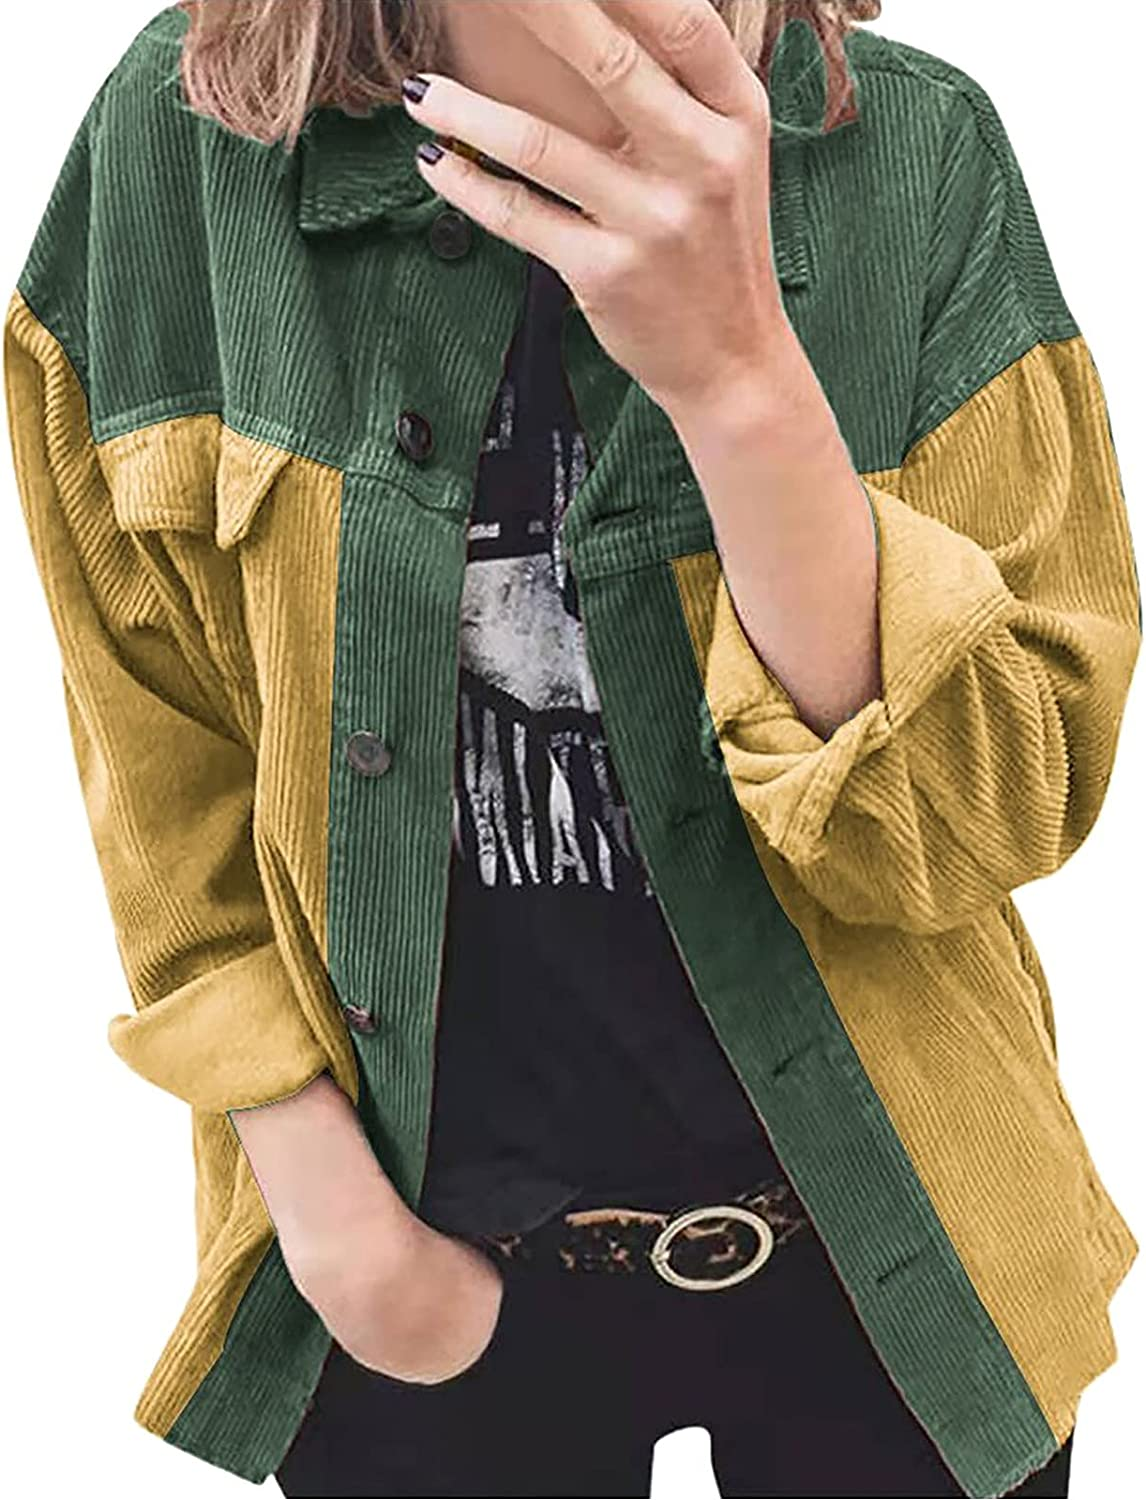 MINEMIN Women's Corduroy Jacket Casual Long Sleeve Button Down Autumn and Winter Clothes Coat Jackets